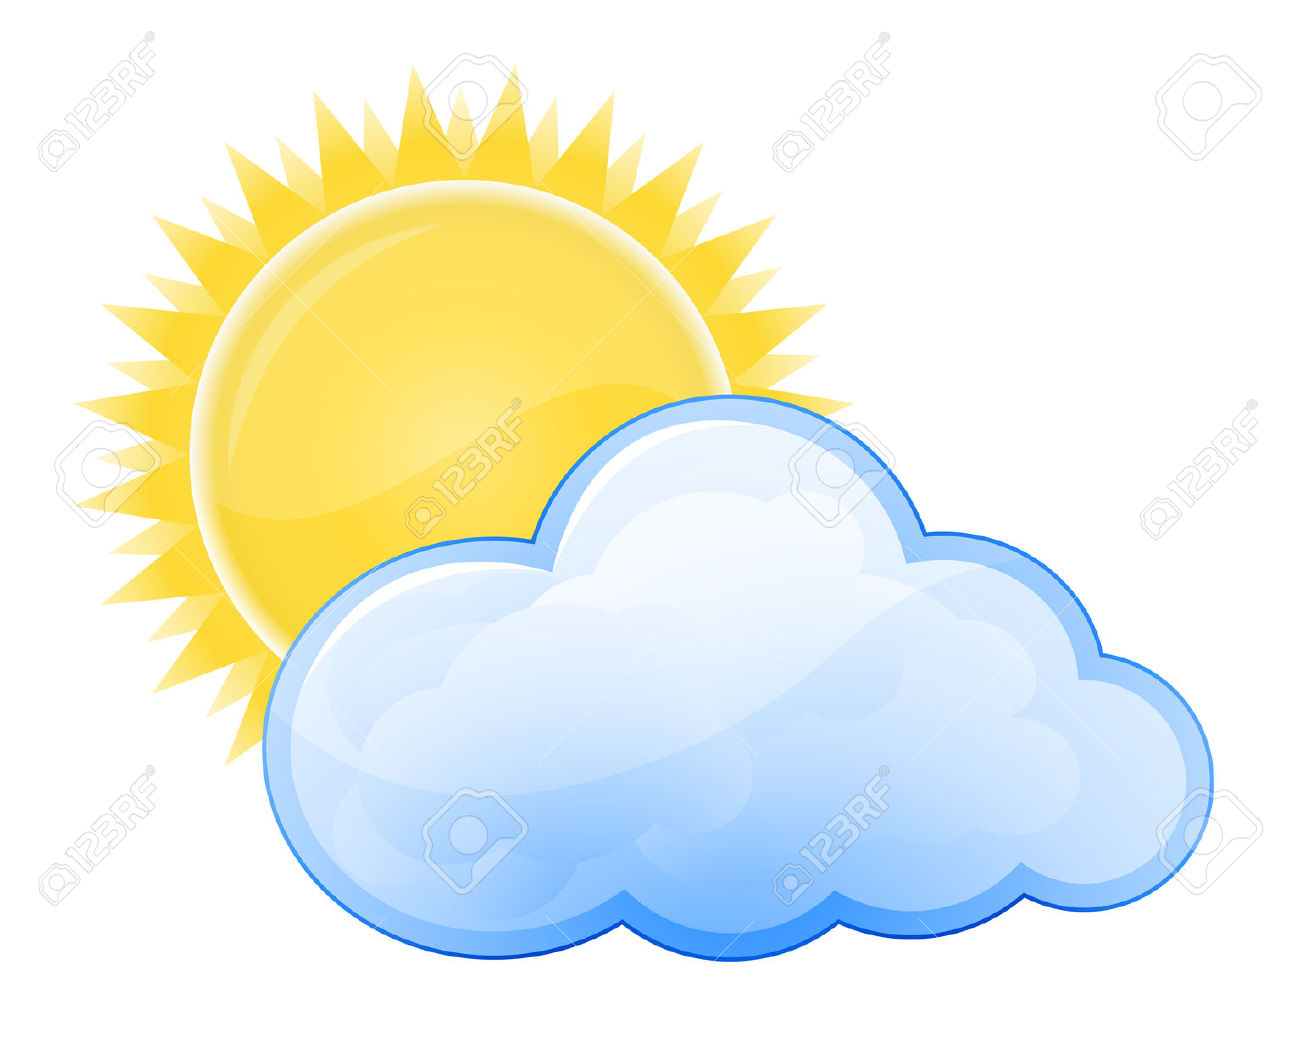 Sunny cloudy weather clipart clip art black and white download Cloudy Weather Clipart | Free download best Cloudy Weather ... clip art black and white download